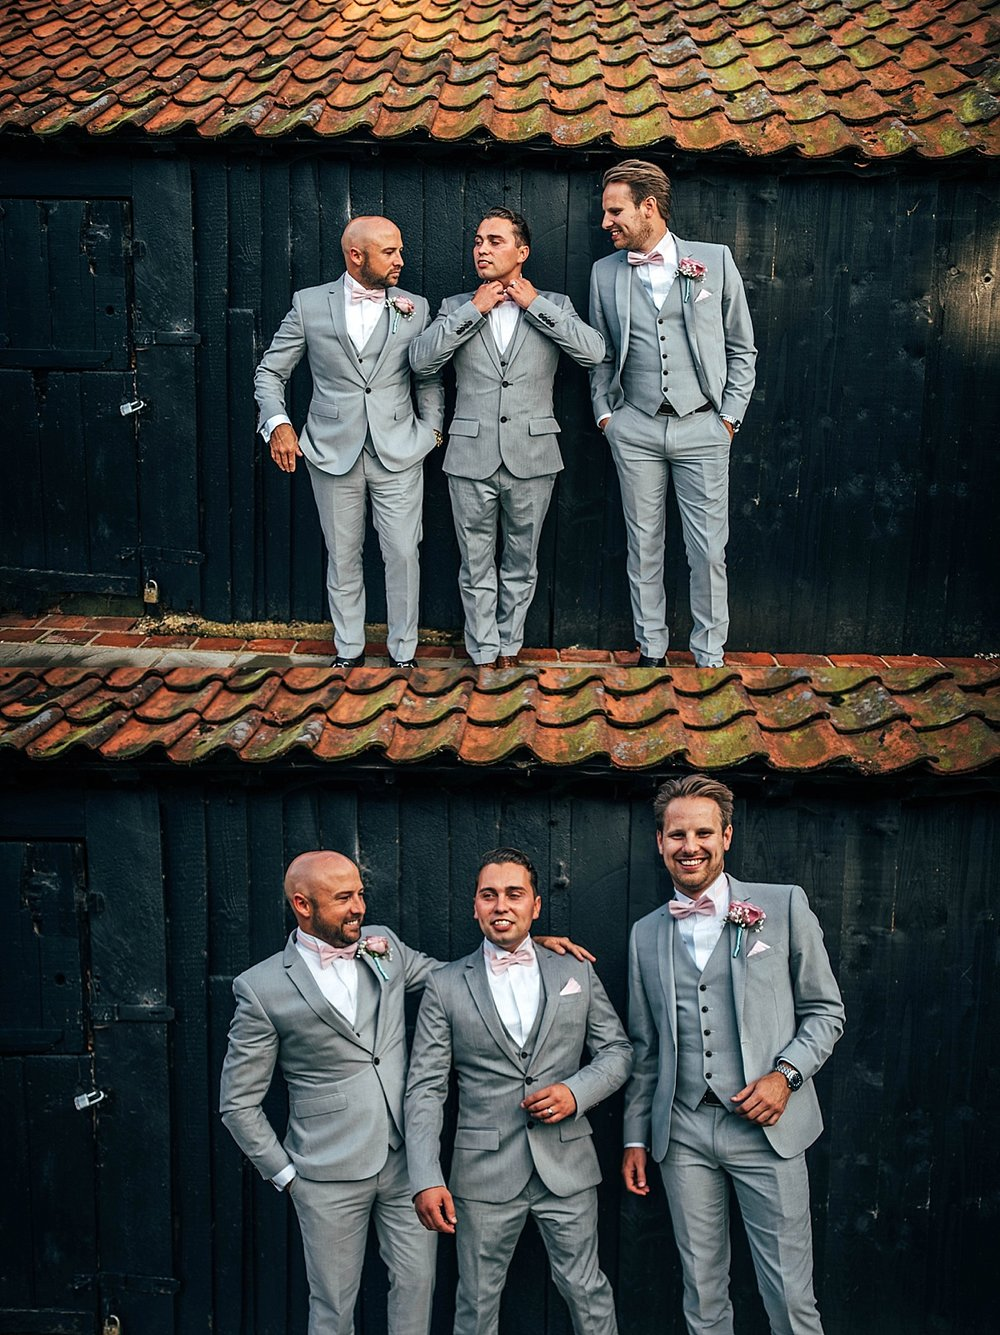 Bride Groom Essex Wedding Photographer Documentary Blake Hall Groom and Groomsmen